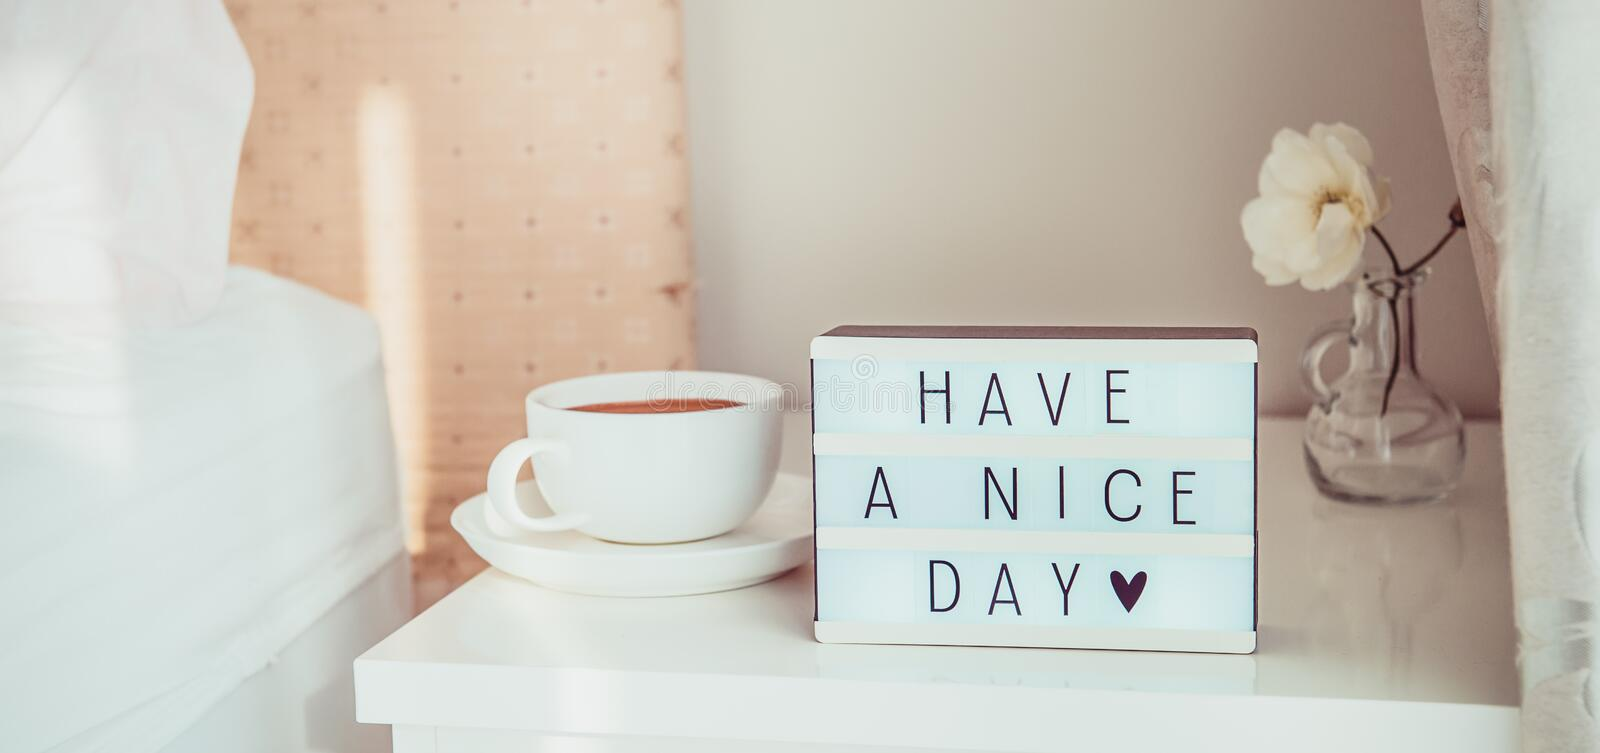 Close up Have a nice day text message on lighted box, cup of coffee and white flower on the bedside table in sun light. Good. Morning mood. Hospitality, care stock images